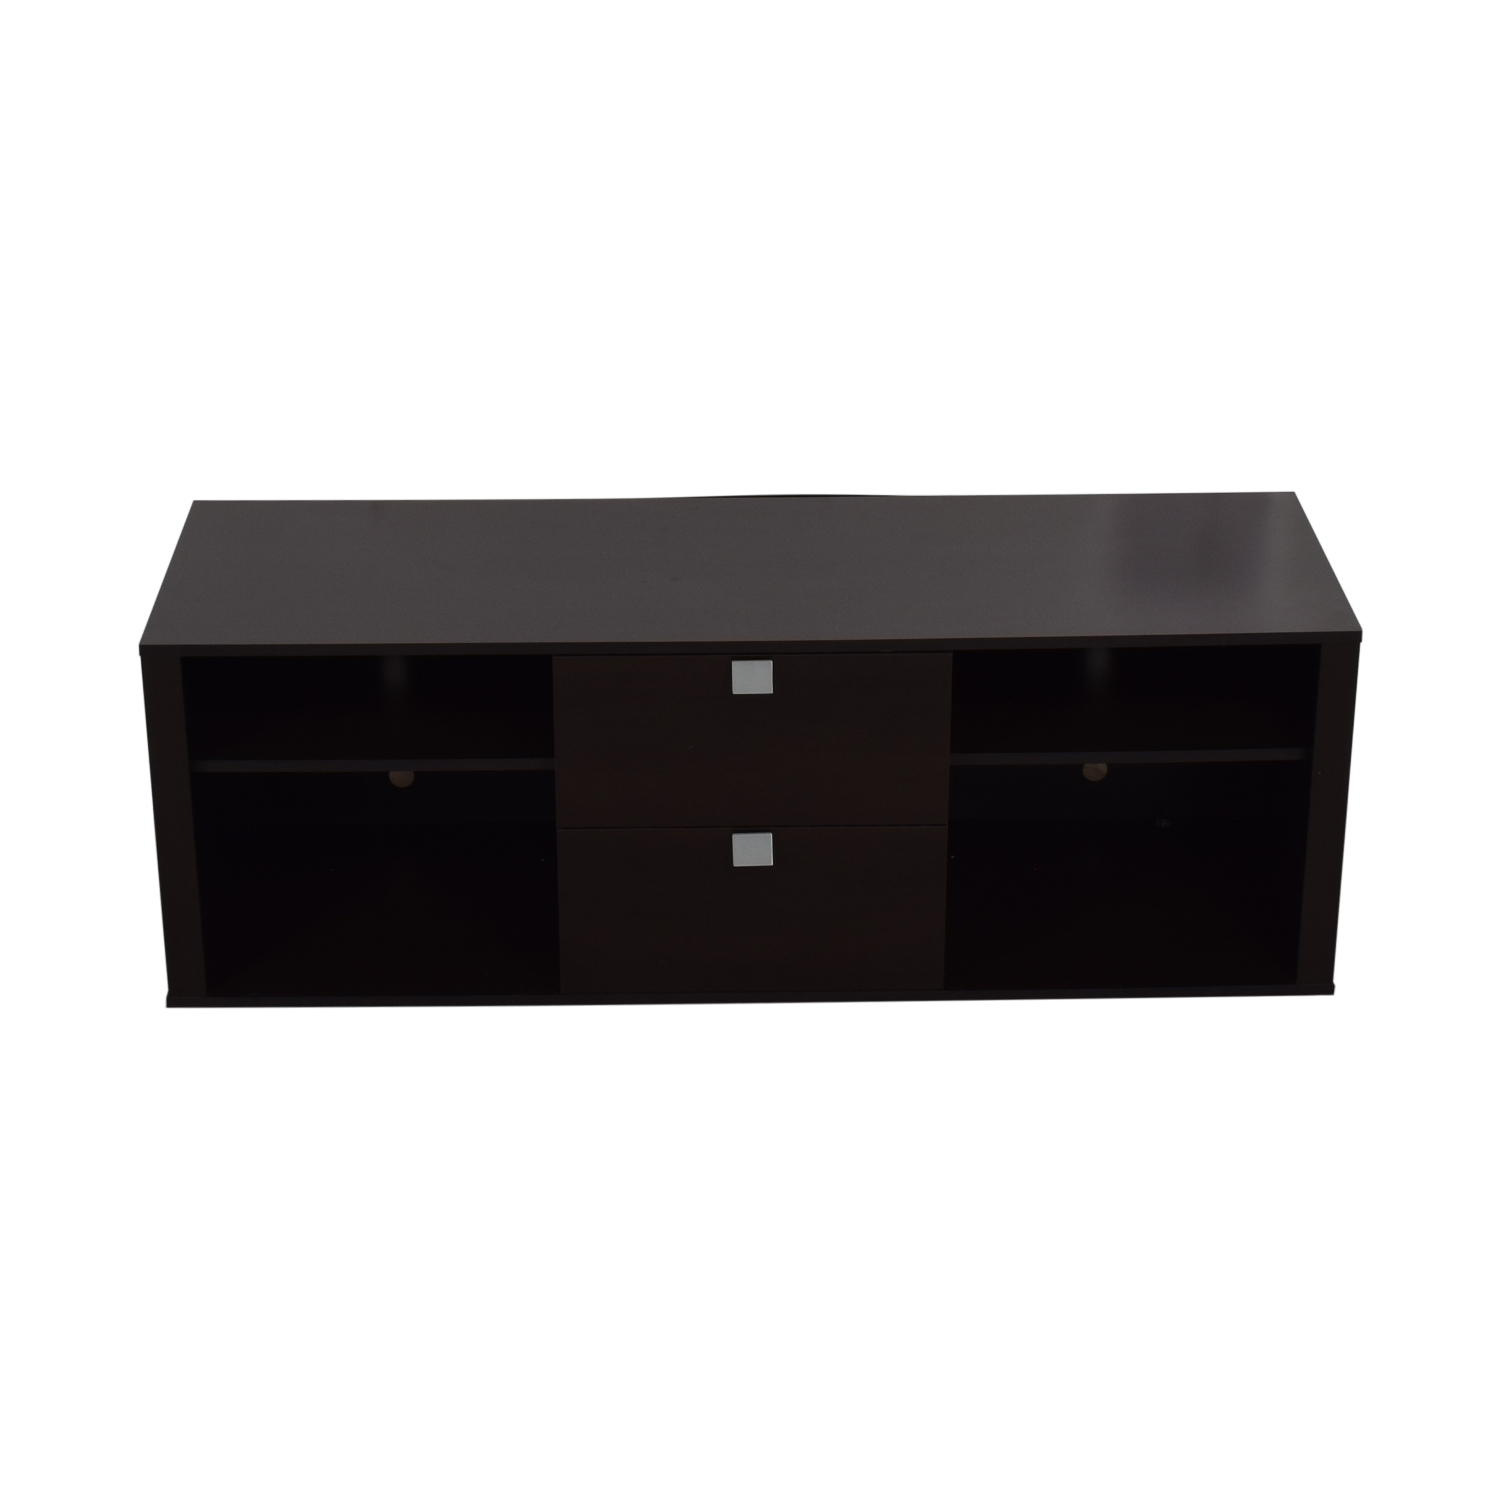 South Shore South Shore Two Drawer Media Unit dimensions